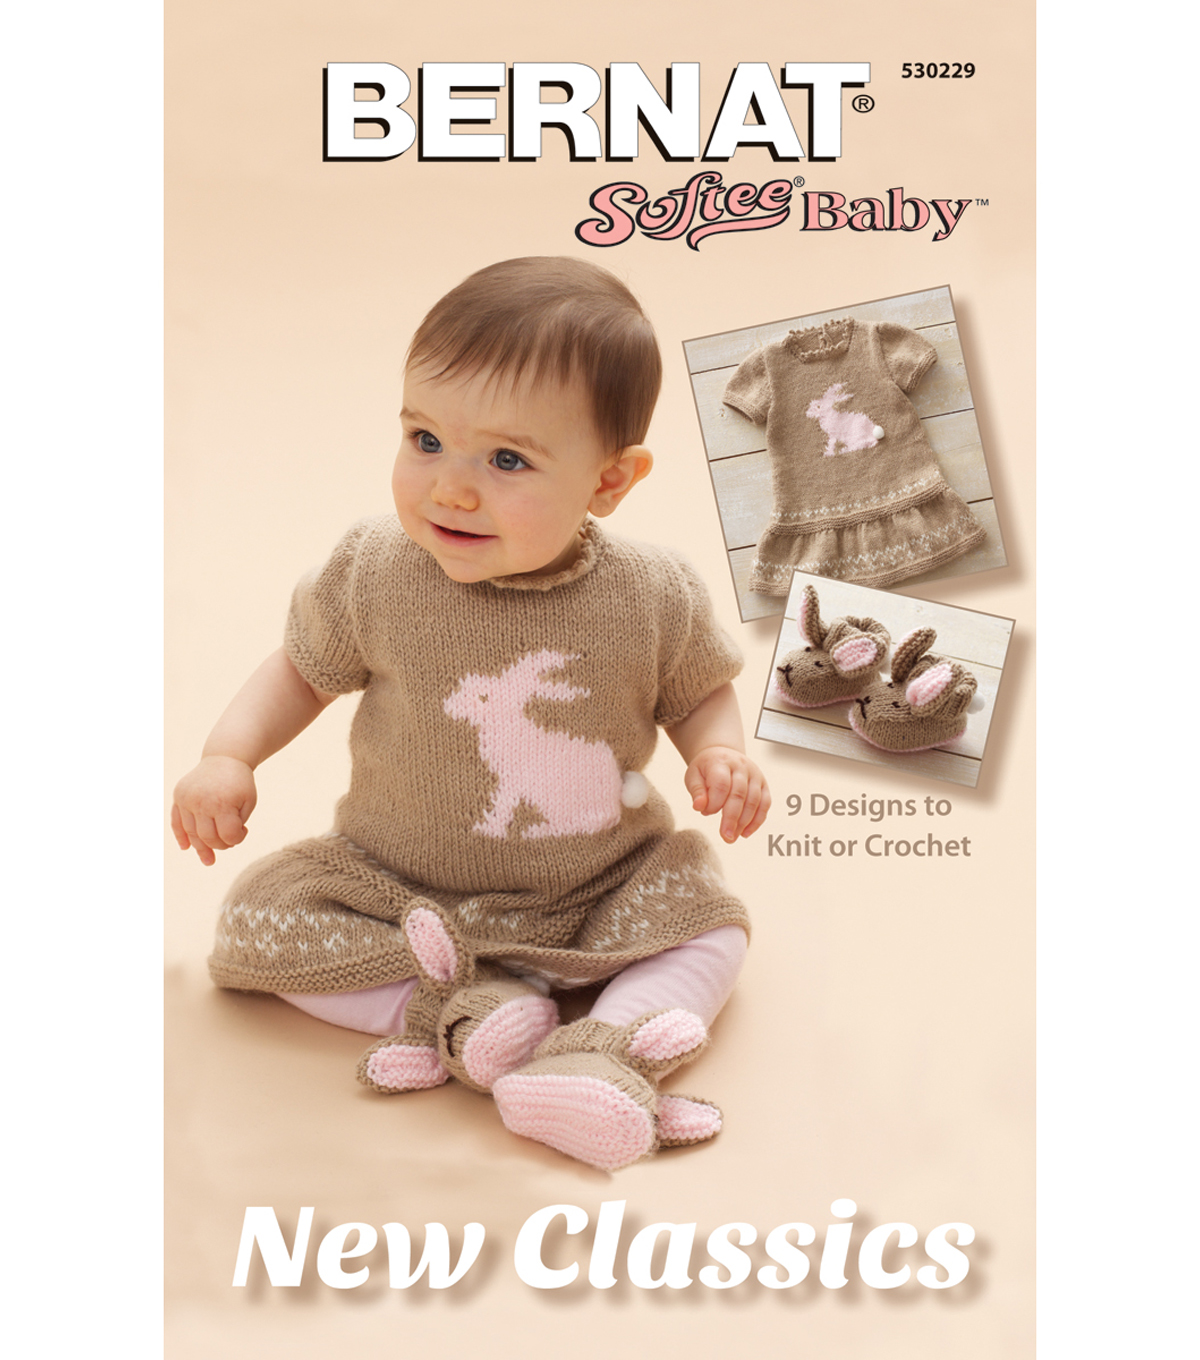 Bernat New Classics-Softee Baby Knitting Book